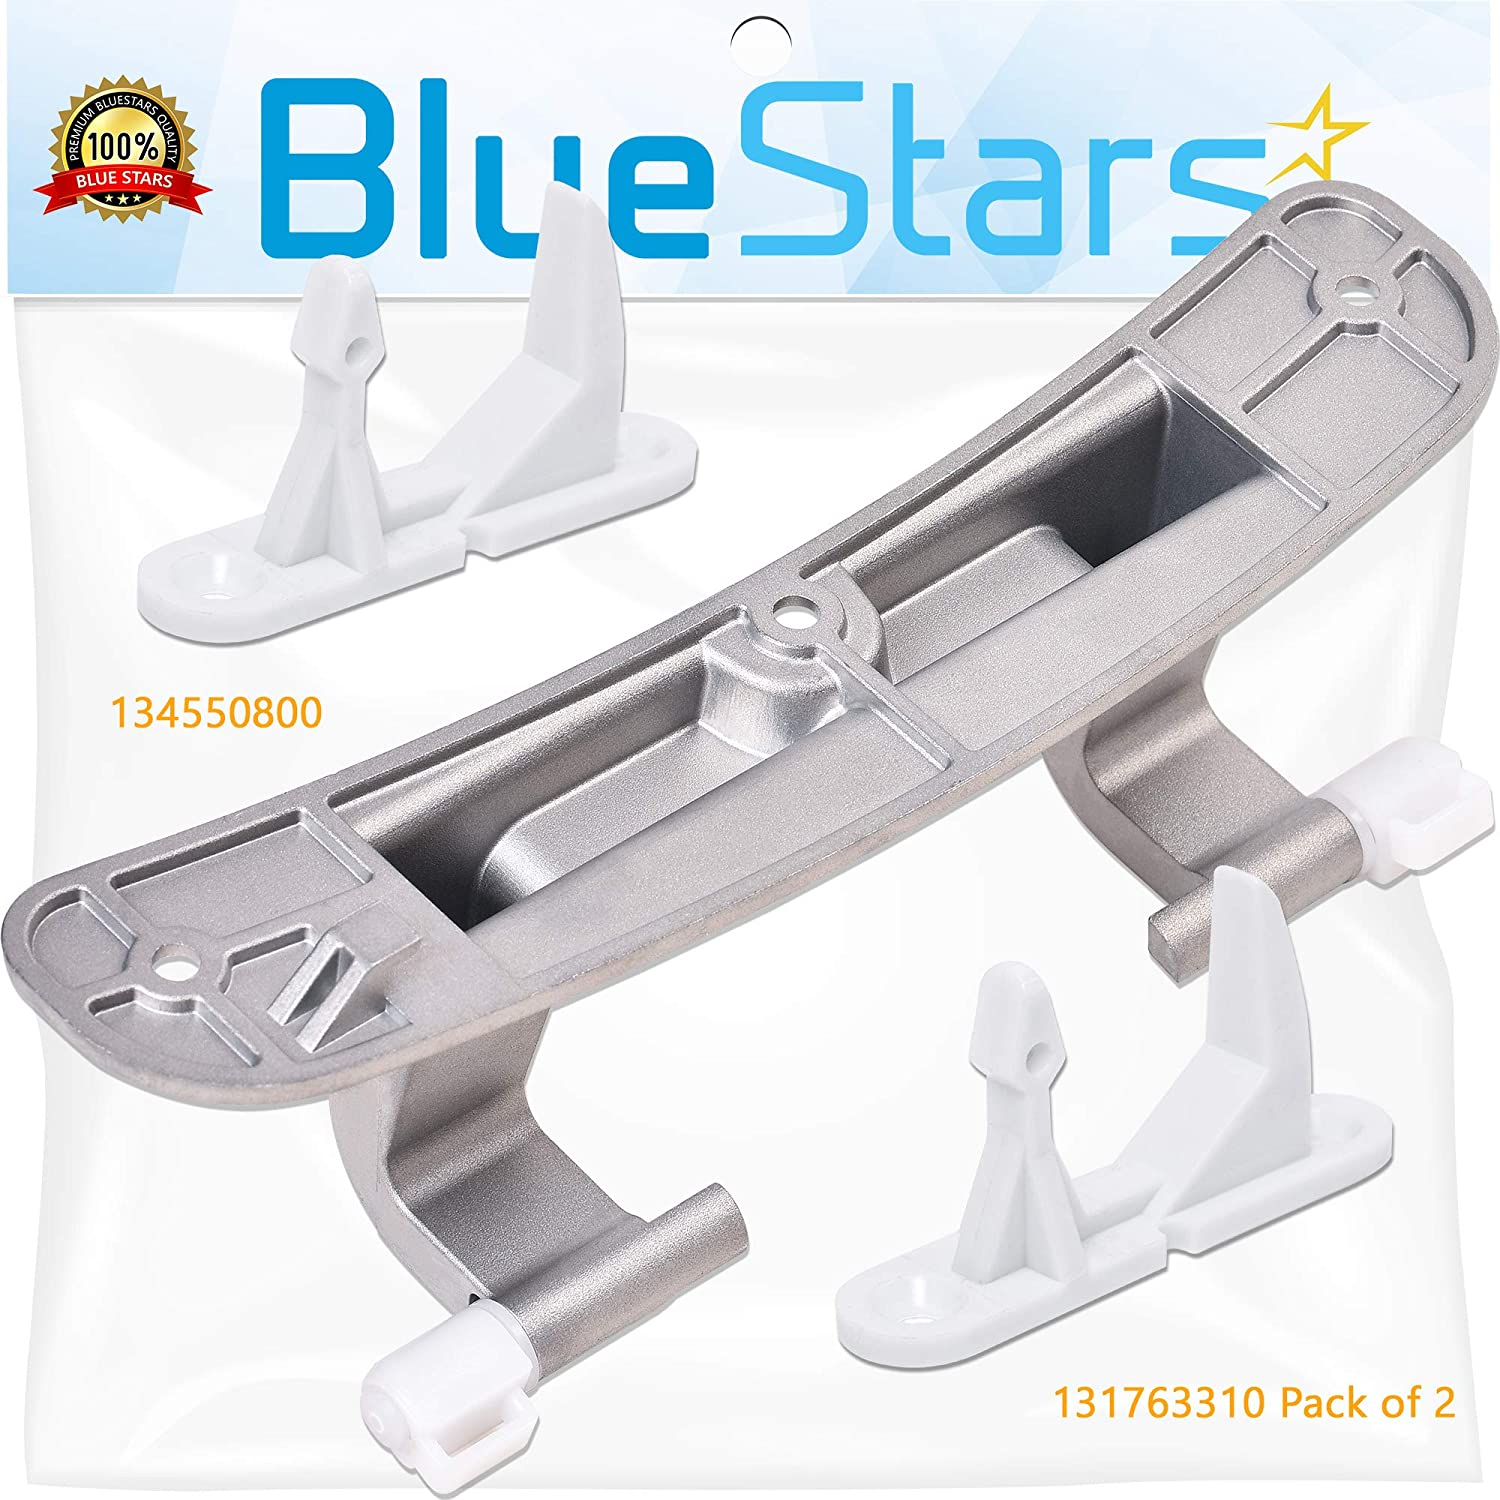 Ultra Durable 131763310 Washer Door Striker & 134550800 Washer Door Hinge with Bushings Kit Replacement by Blue Stars - Exact Fit for Frigidaire & Kenmore Washers